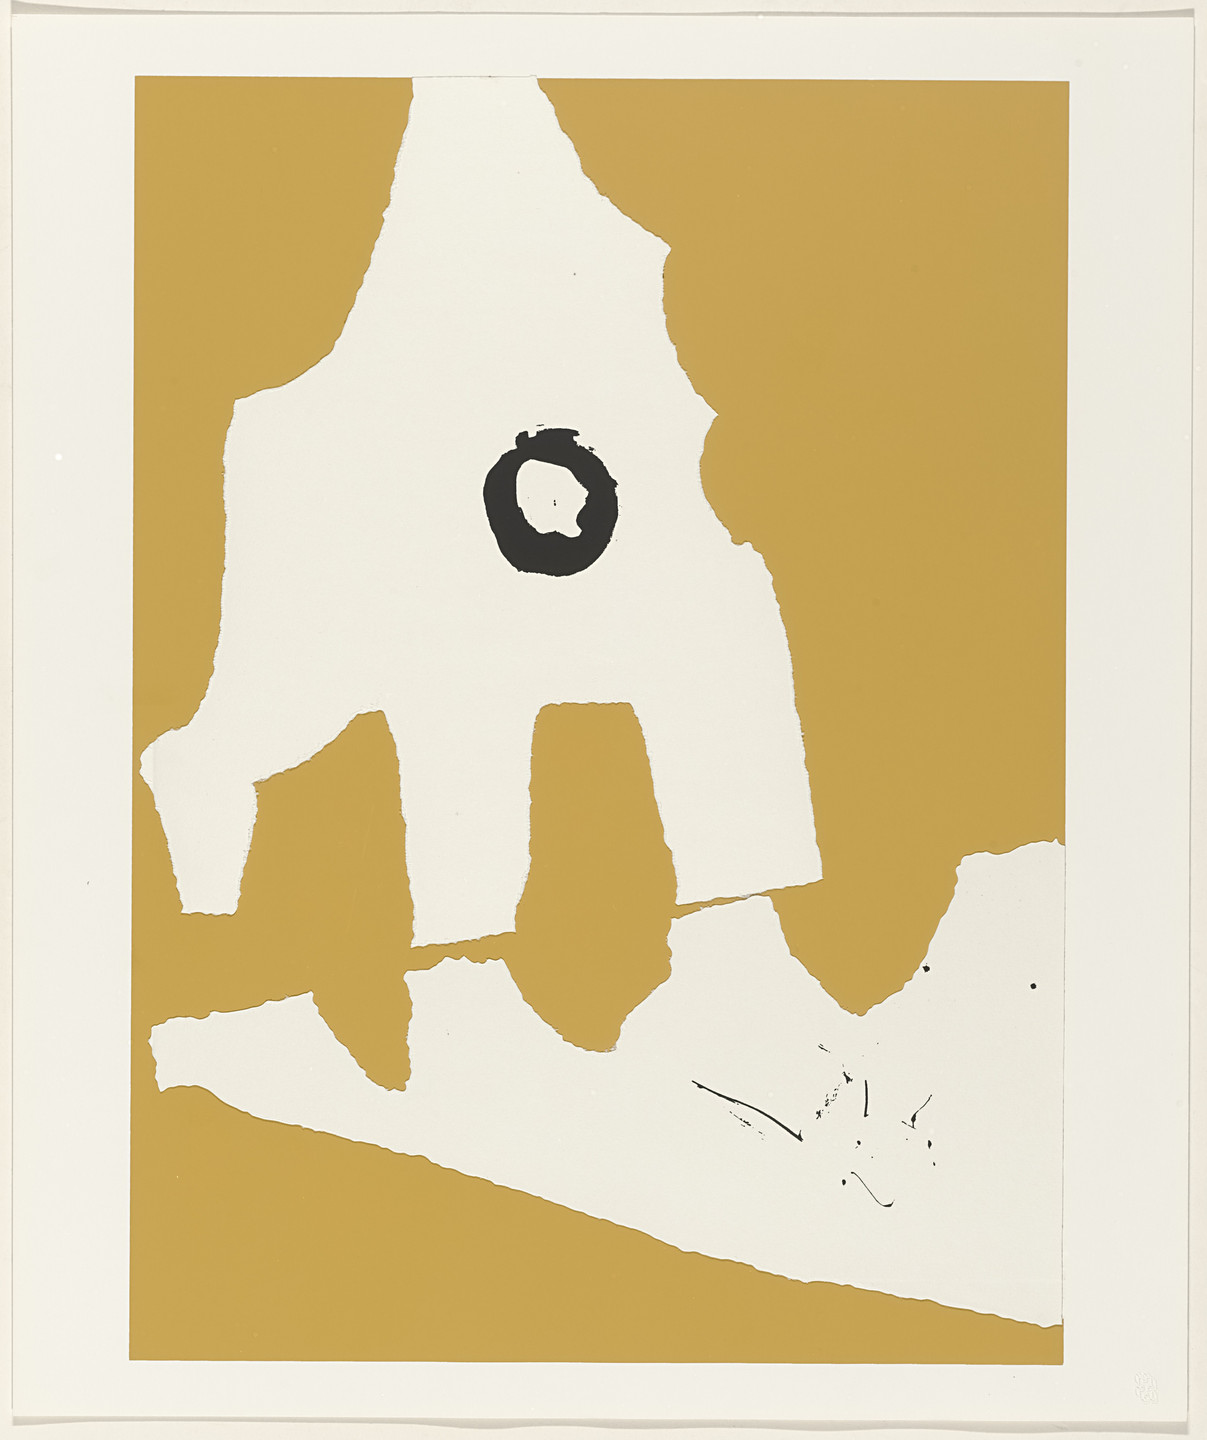 Robert Motherwell. Untitled from X + X (Ten Works by Ten Painters). 1964